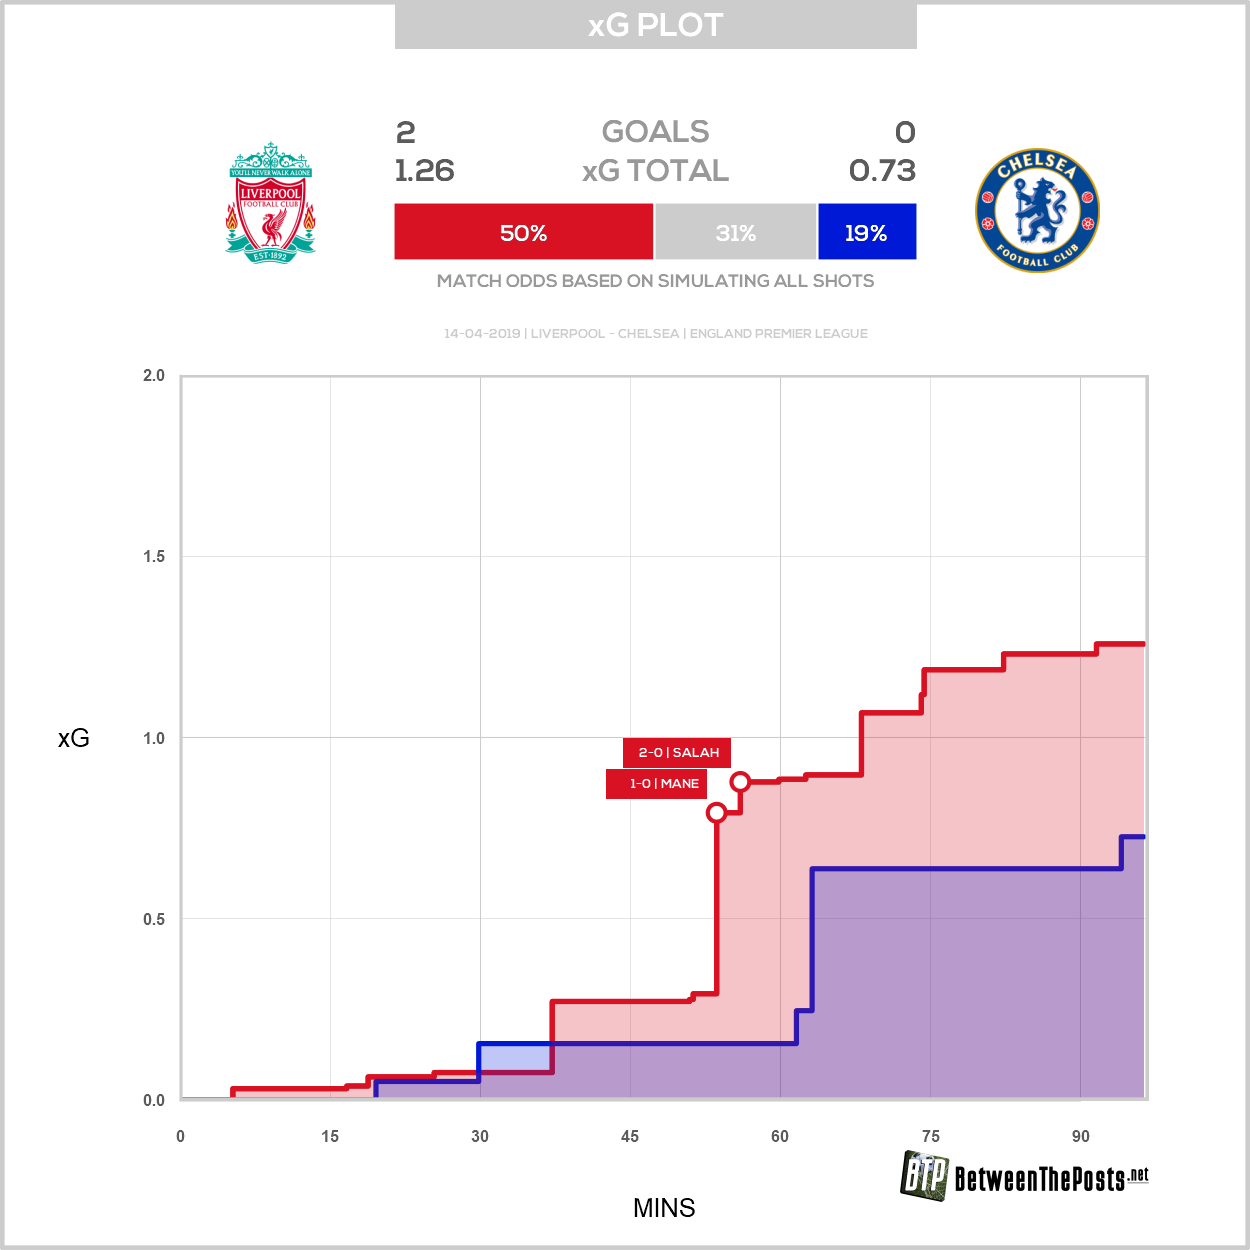 Expected goals plot Liverpool Chelsea 2-0 Premier League